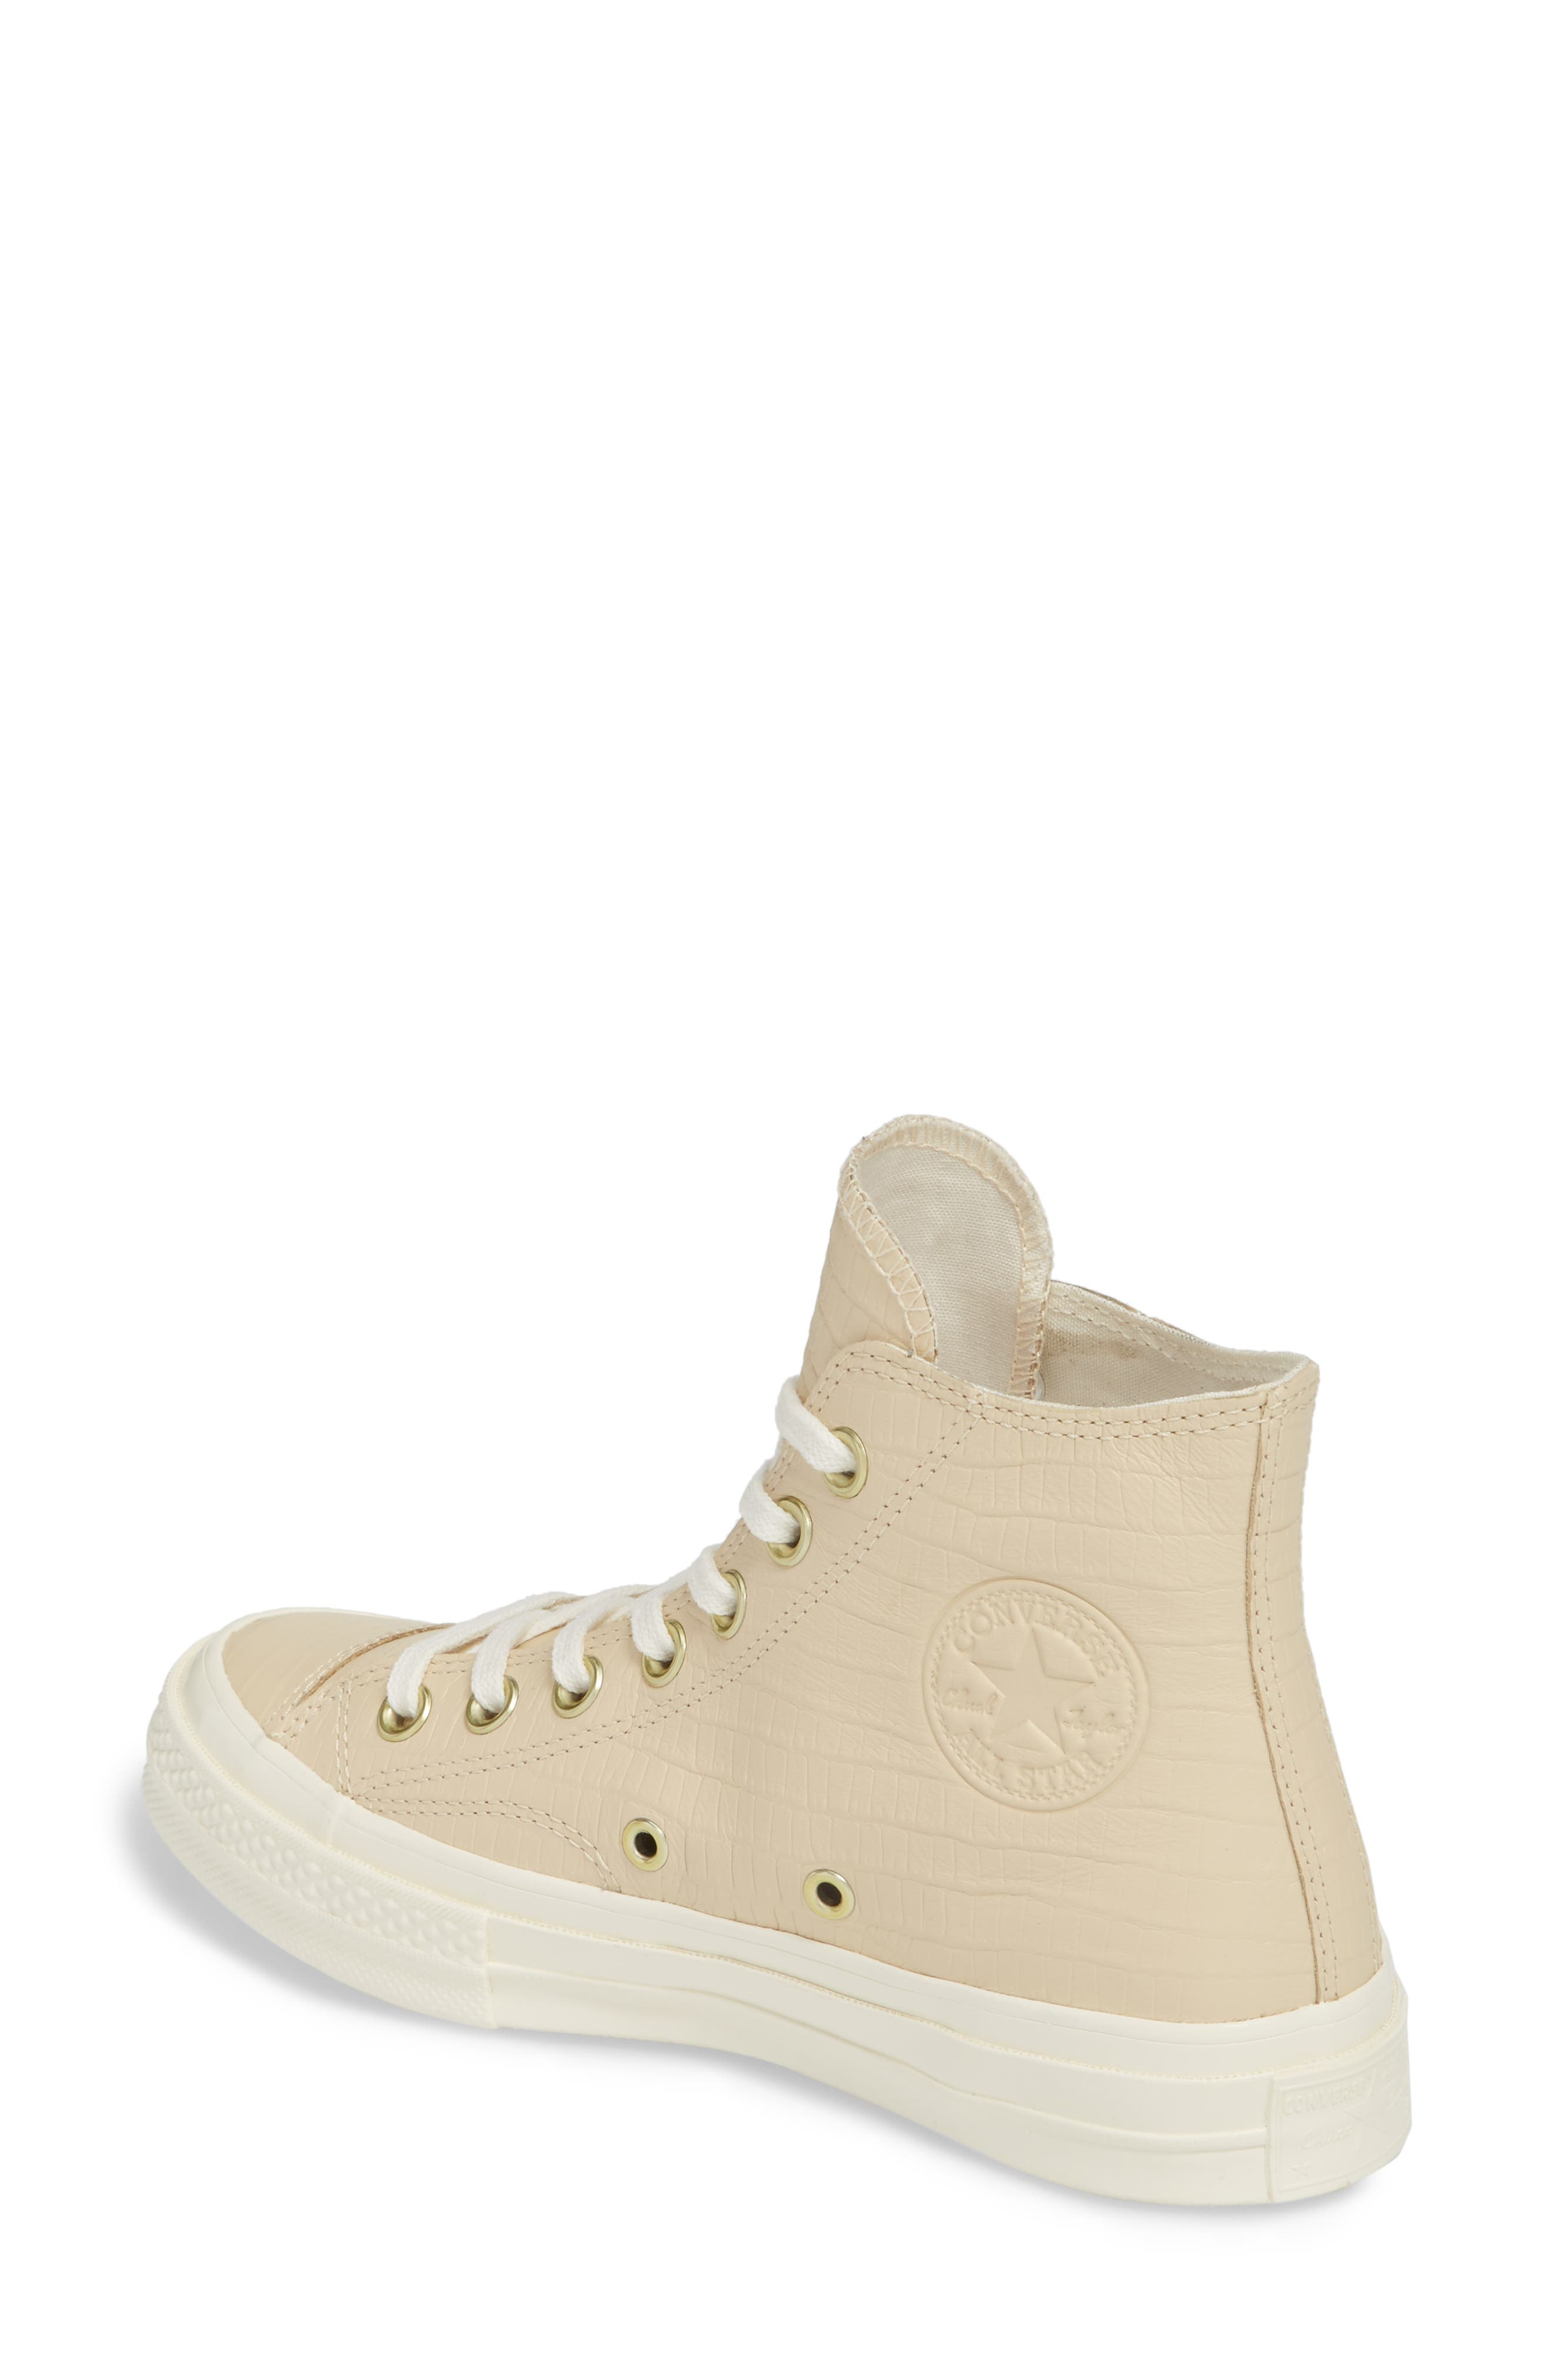 Chuck Taylor<sup>®</sup> All Star<sup>®</sup> CT 70 Reptile High Top Sneaker,                             Alternate thumbnail 2, color,                             250